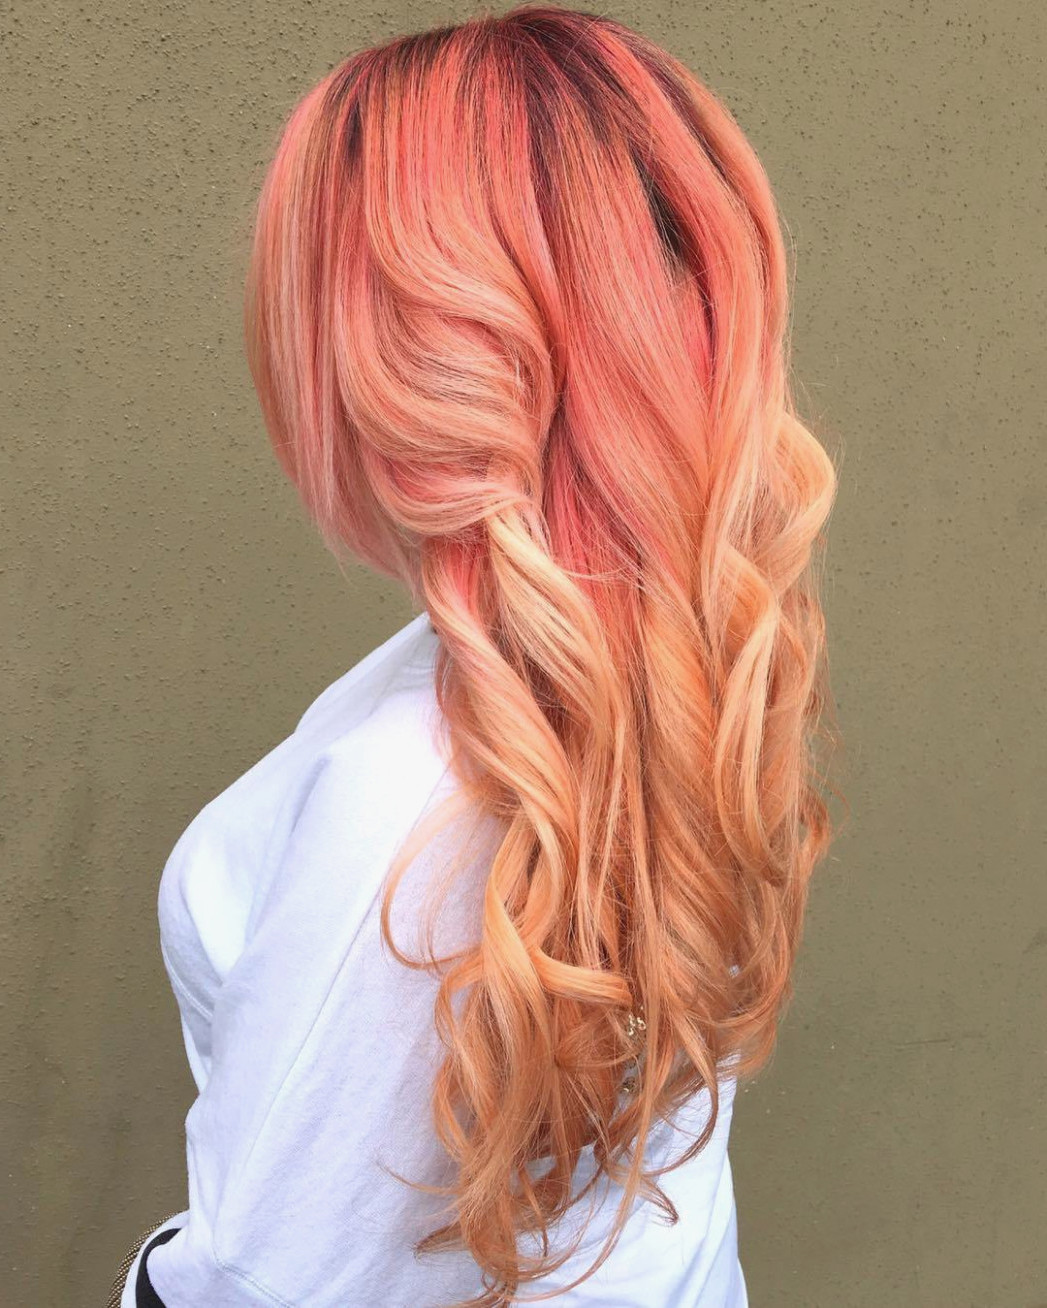 Strawberry Blond Haarfarbe - Ombré Ideen mit roten Highlights